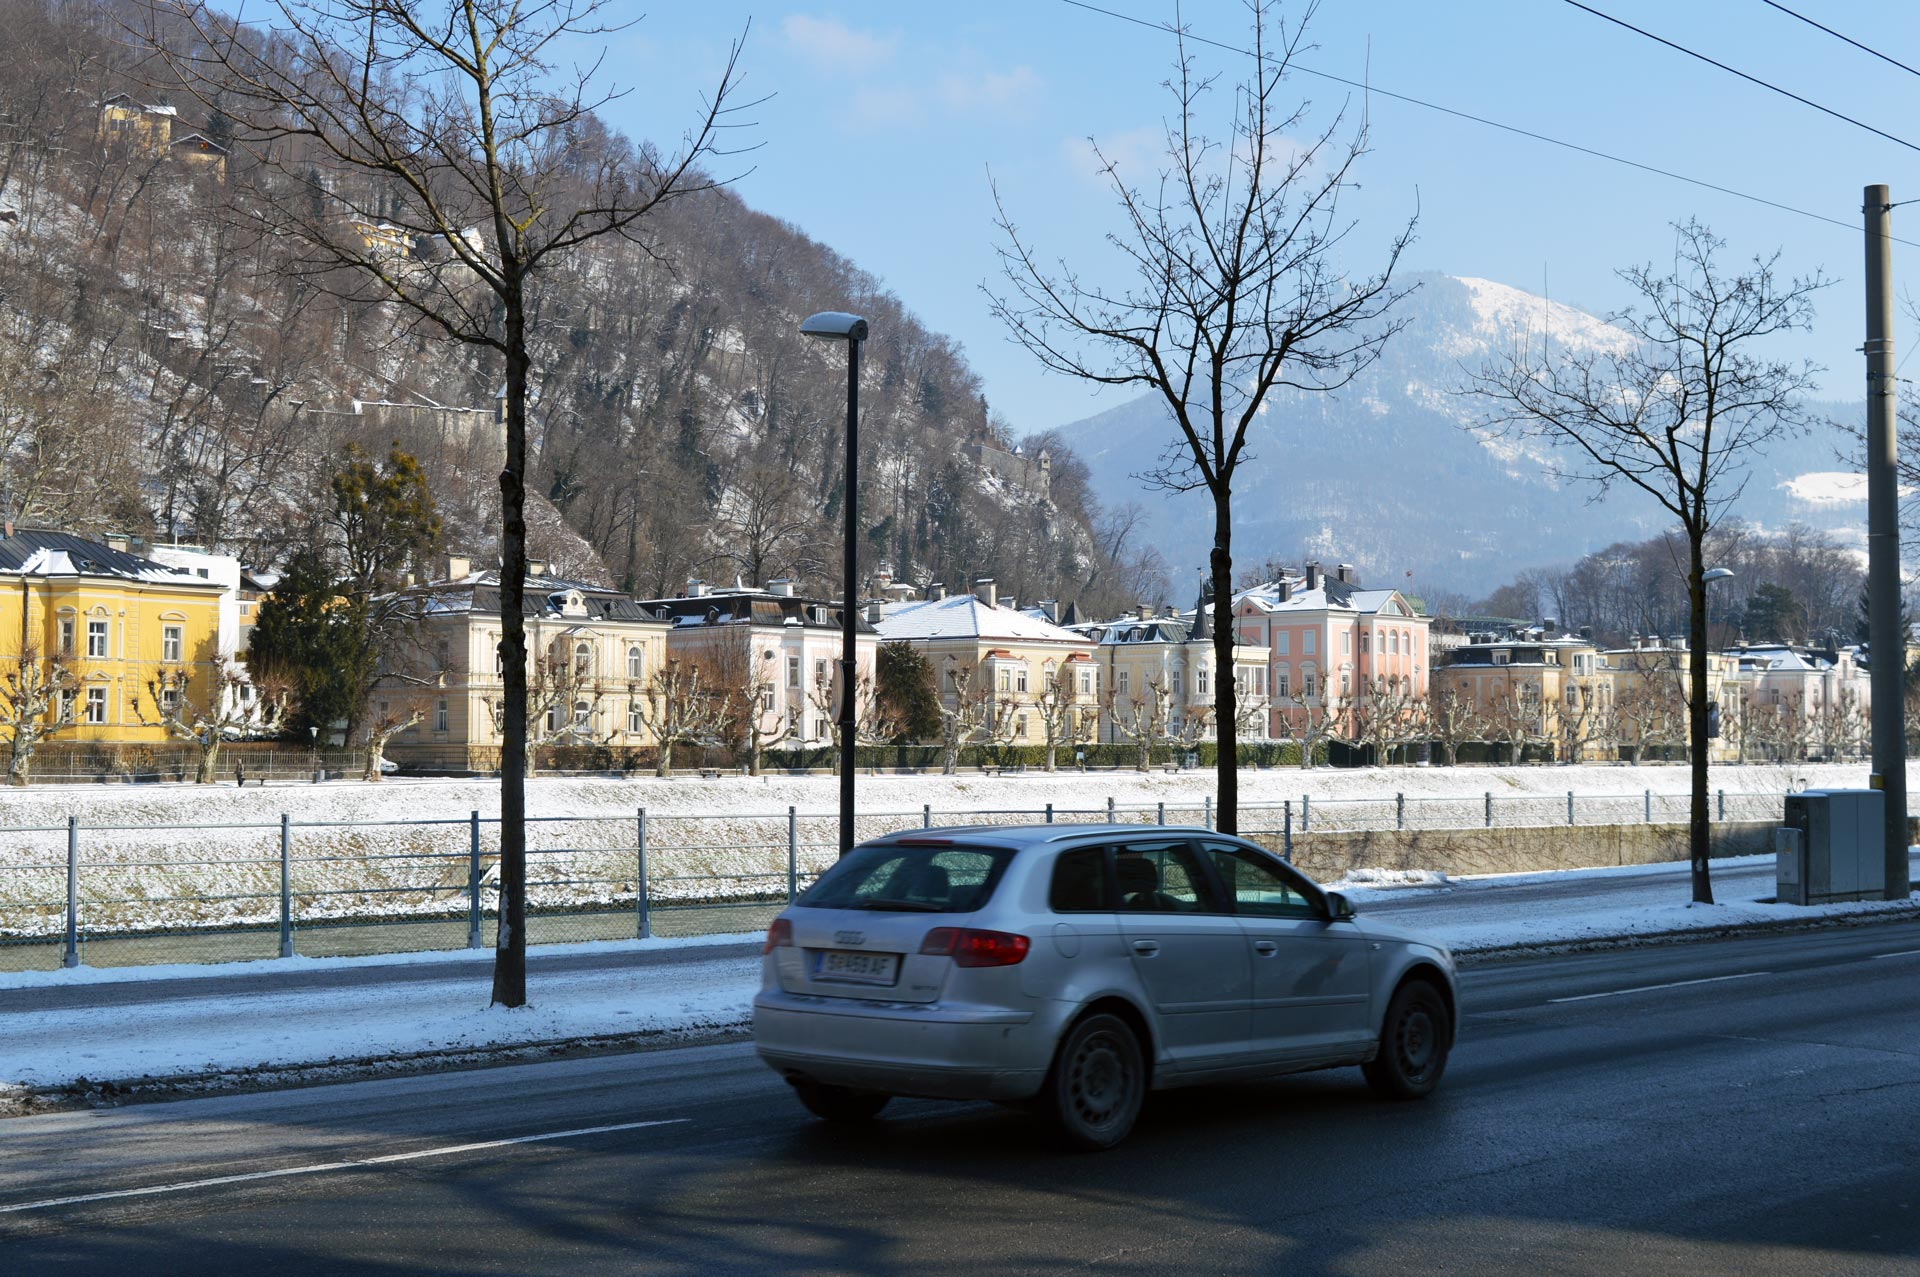 A photograph that doesn't remotely do Salzburg's beauty justice